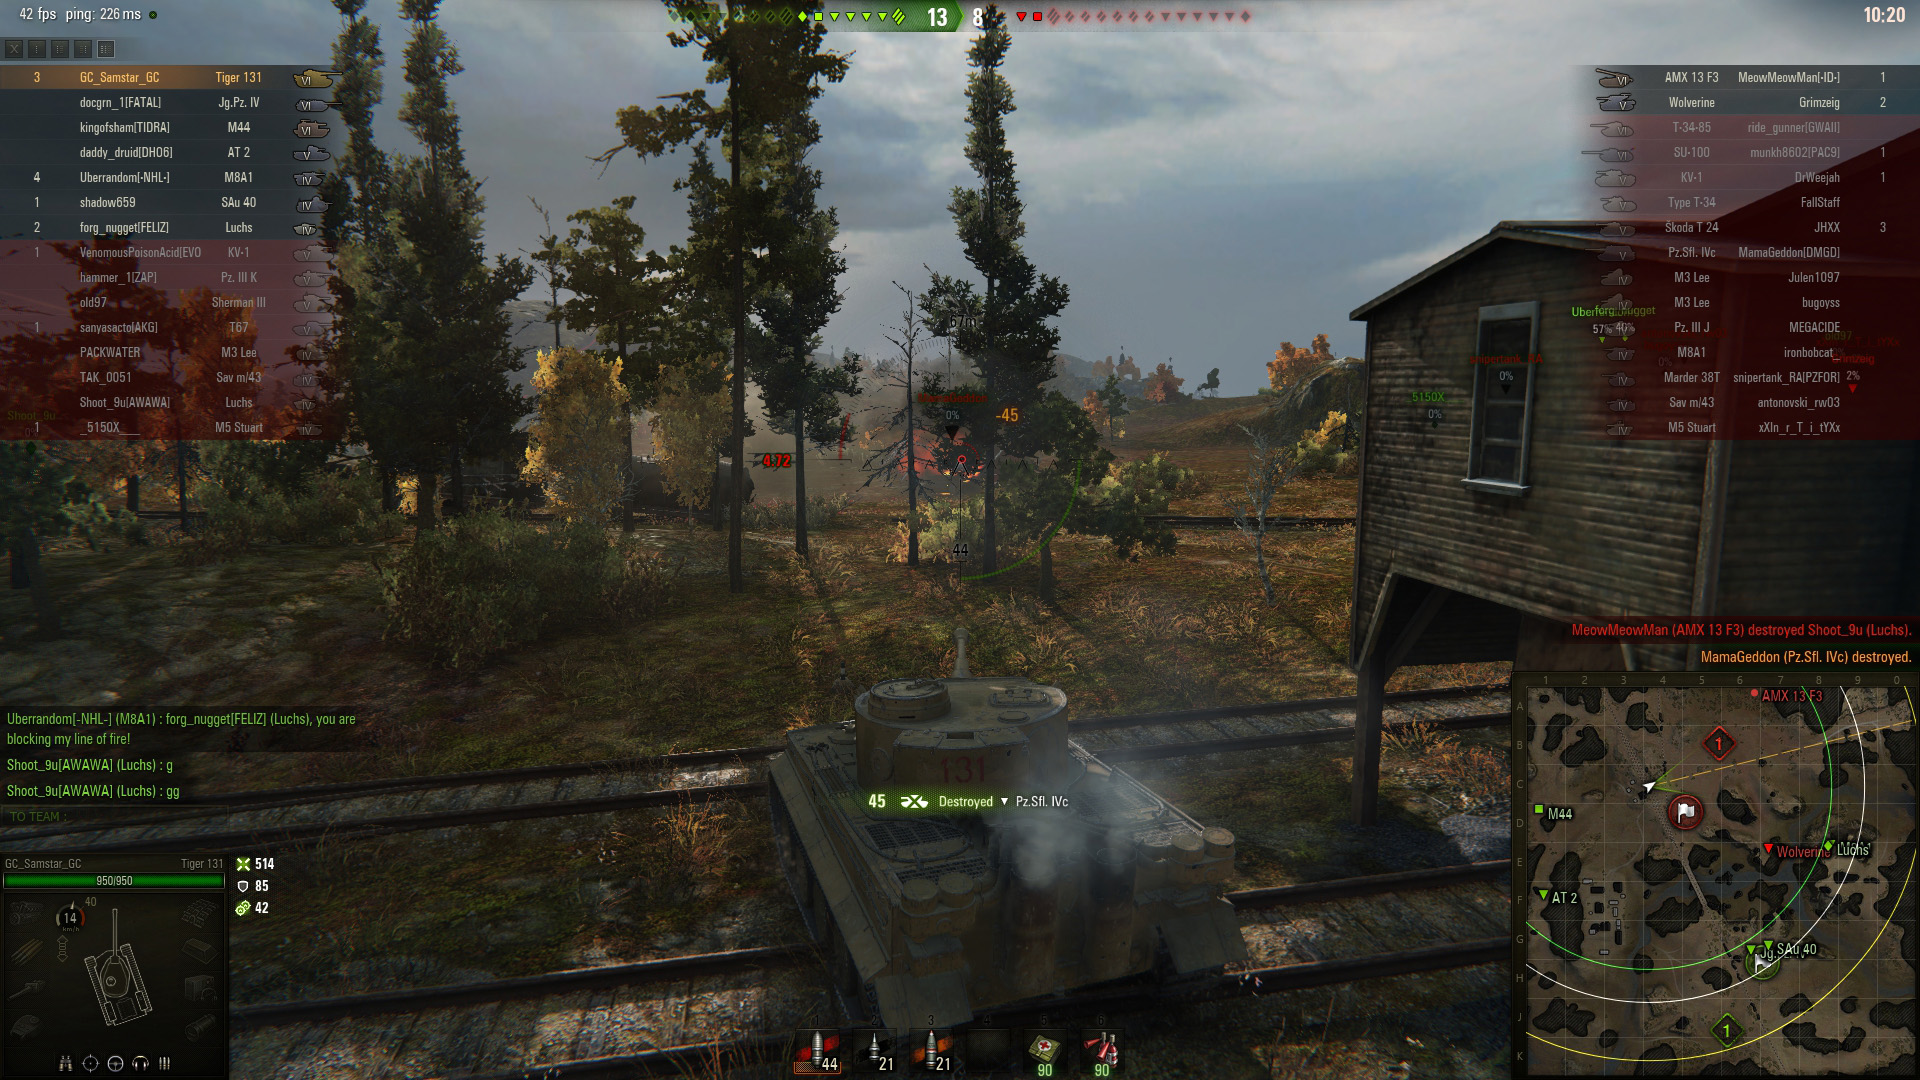 The Tiger 131 excels at mopping up weak enemies, so avoid its high alpha damage gun.